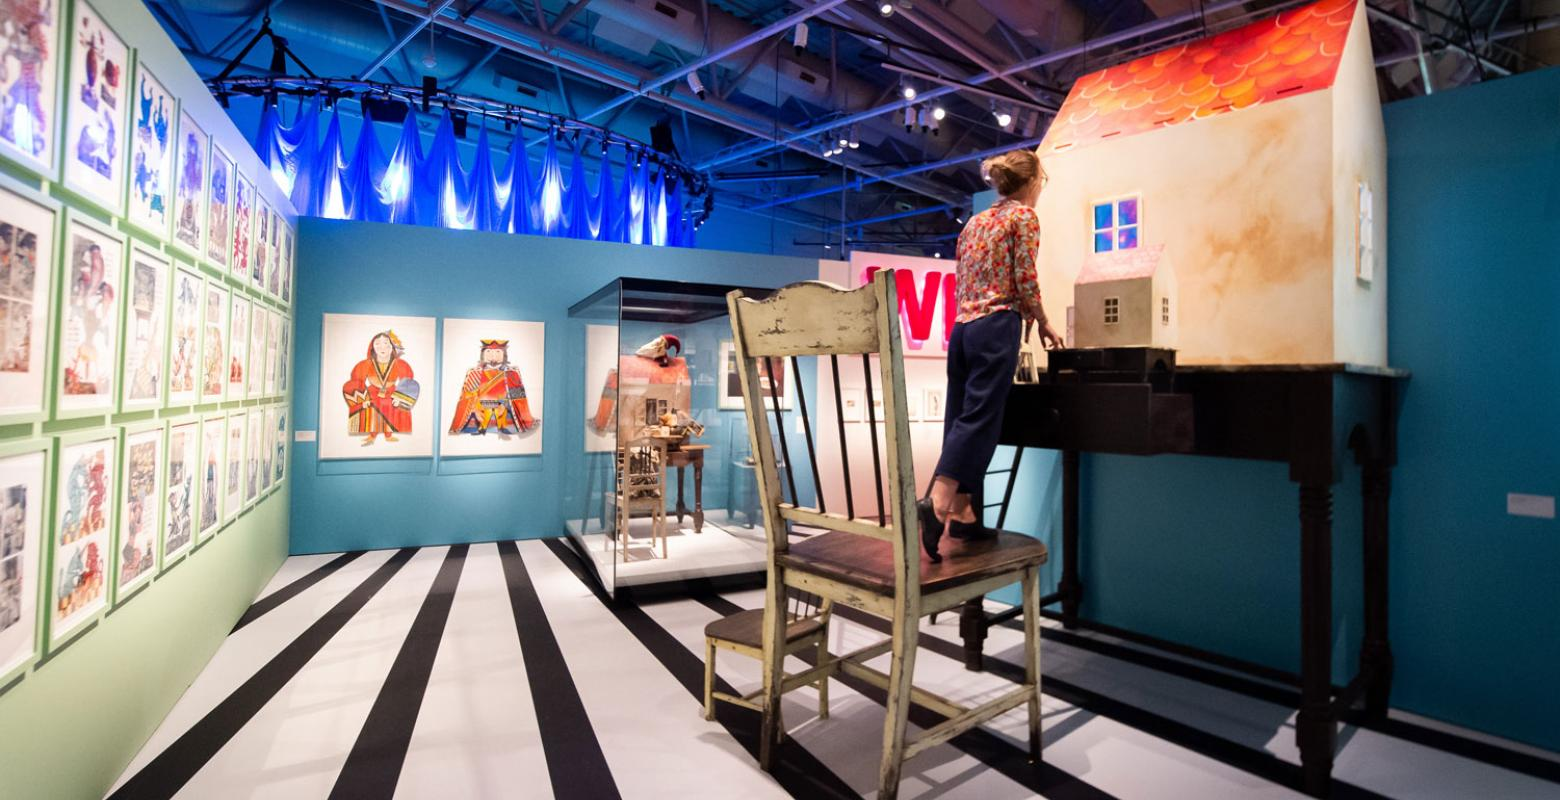 A person stand on a giant chair and peers into a dolls house